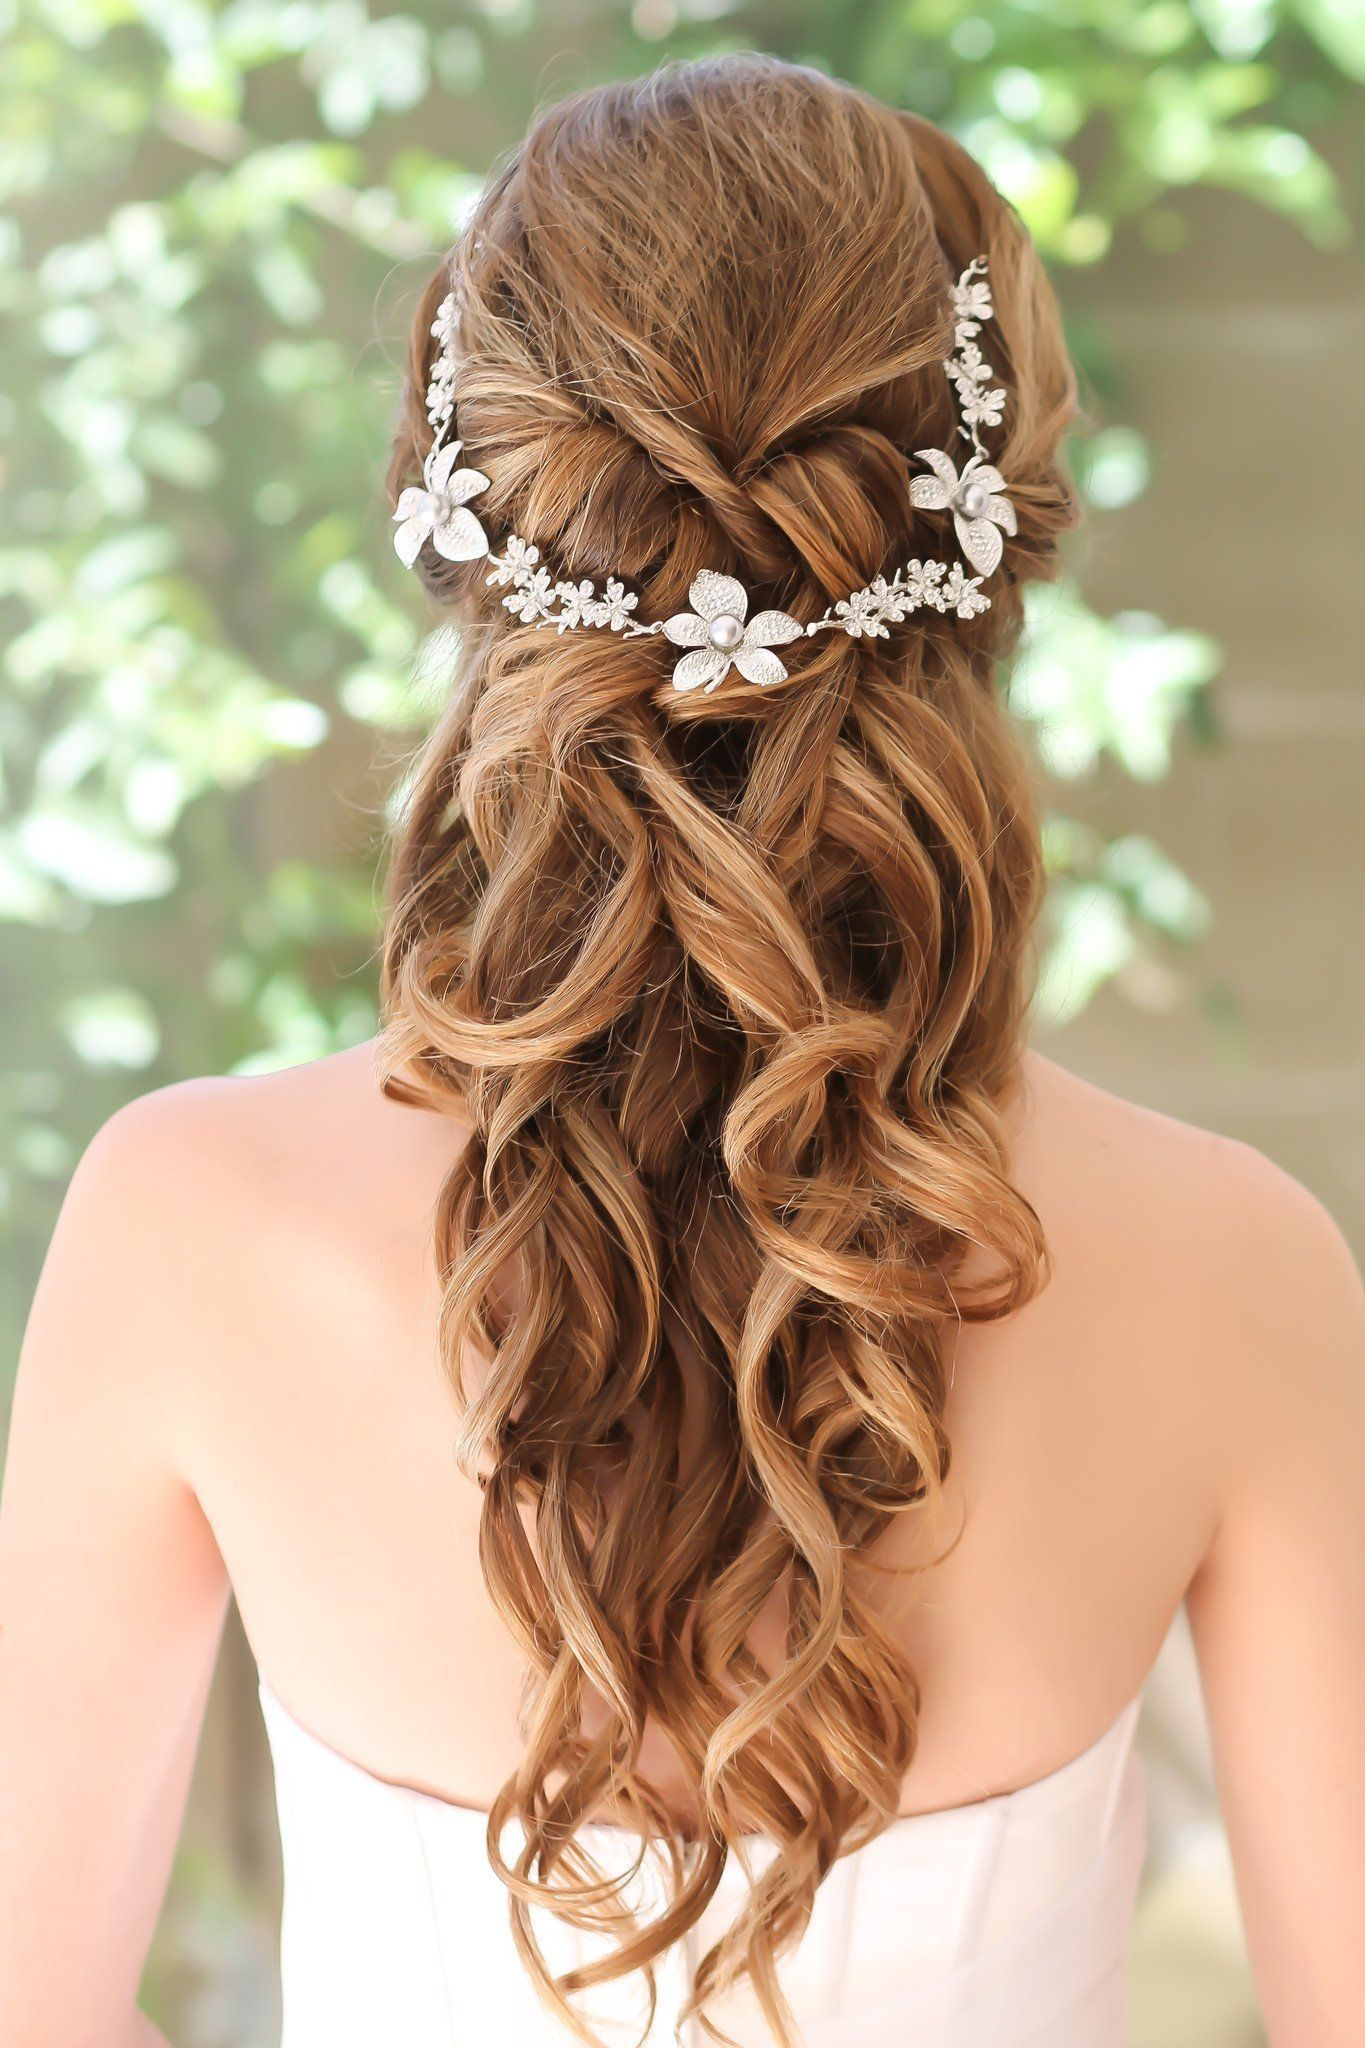 31 How To Make Wedding Hairstyle for Women with Long Hair | Wedding hairstyles for long hair ...